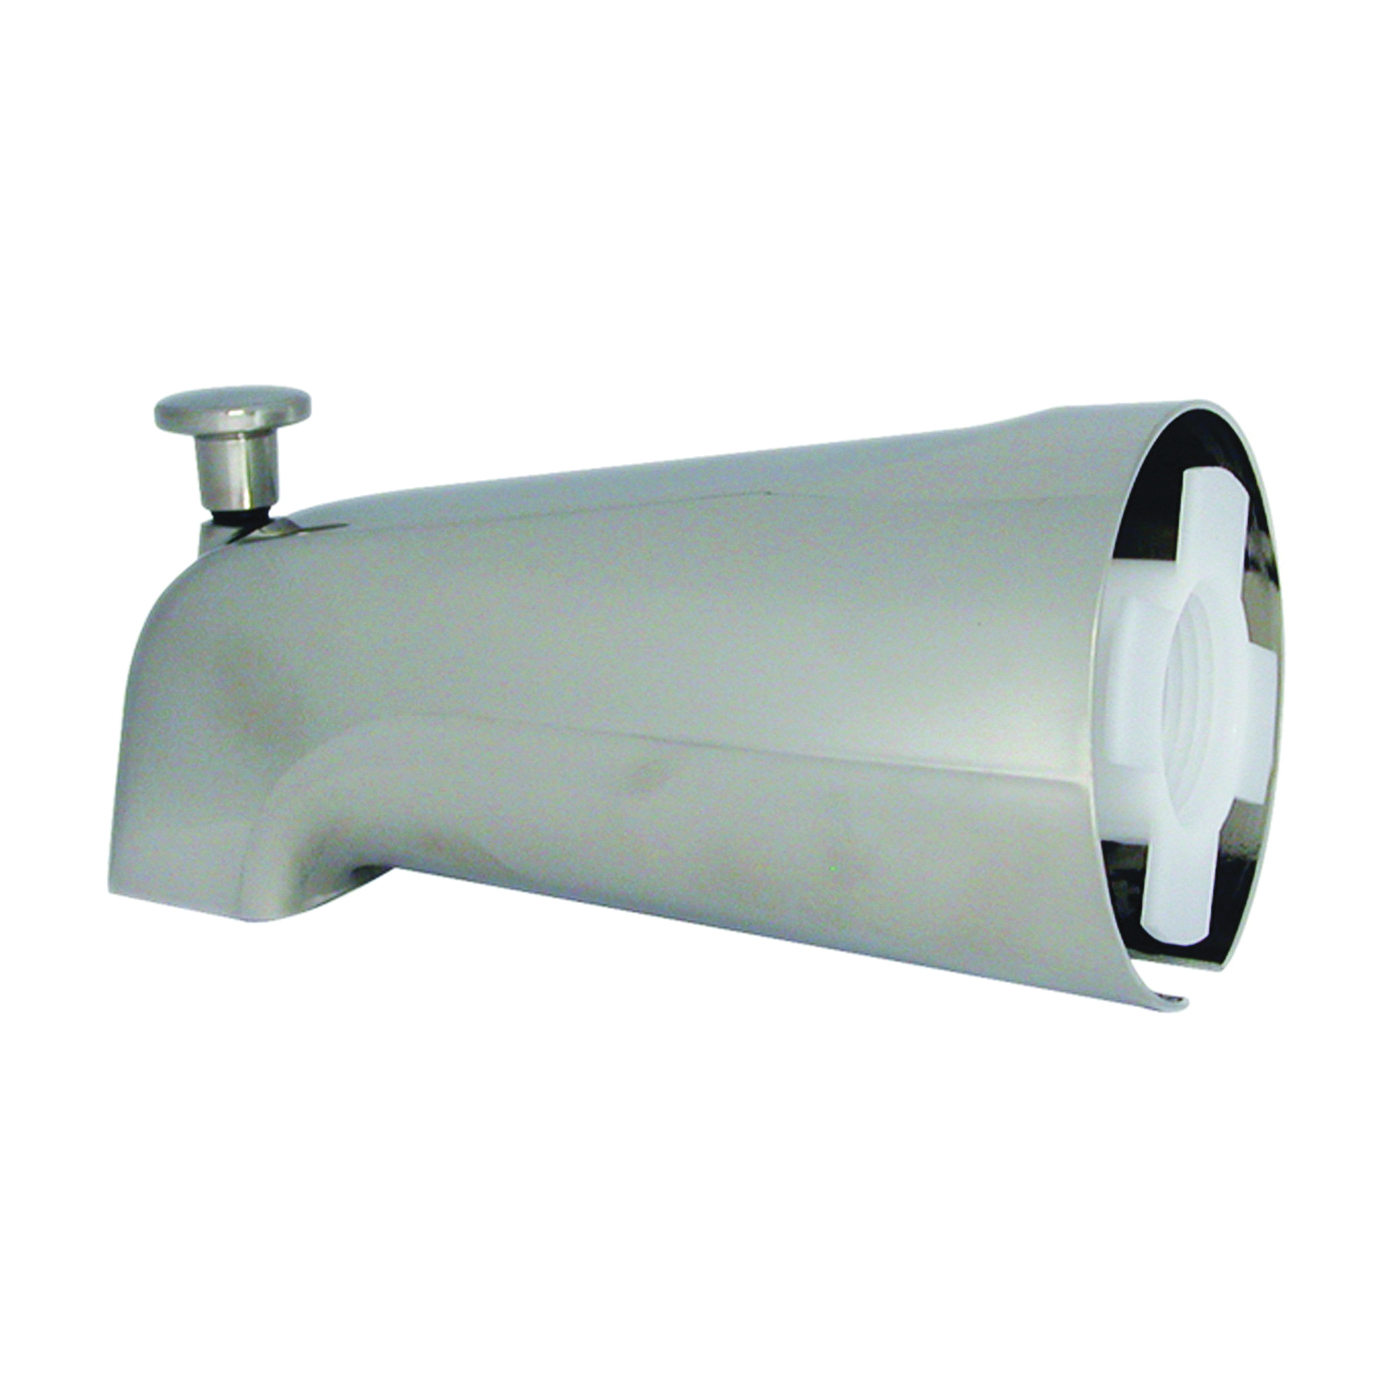 Picture of Danco 89249 Tub Spout with Diverter, Metal, Brushed Nickel